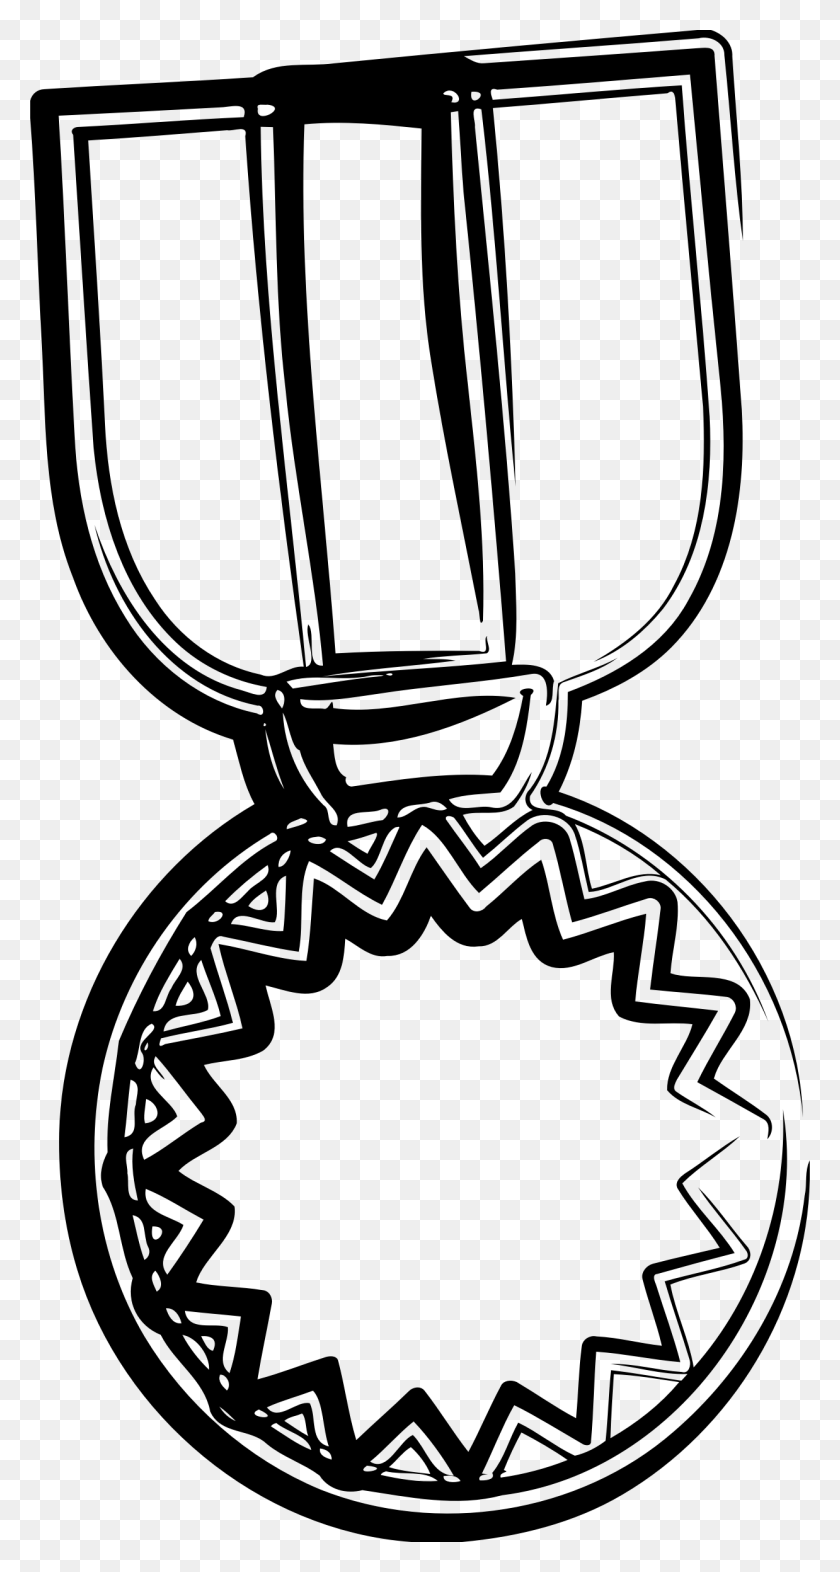 Clipart - Medal Clipart Black And White